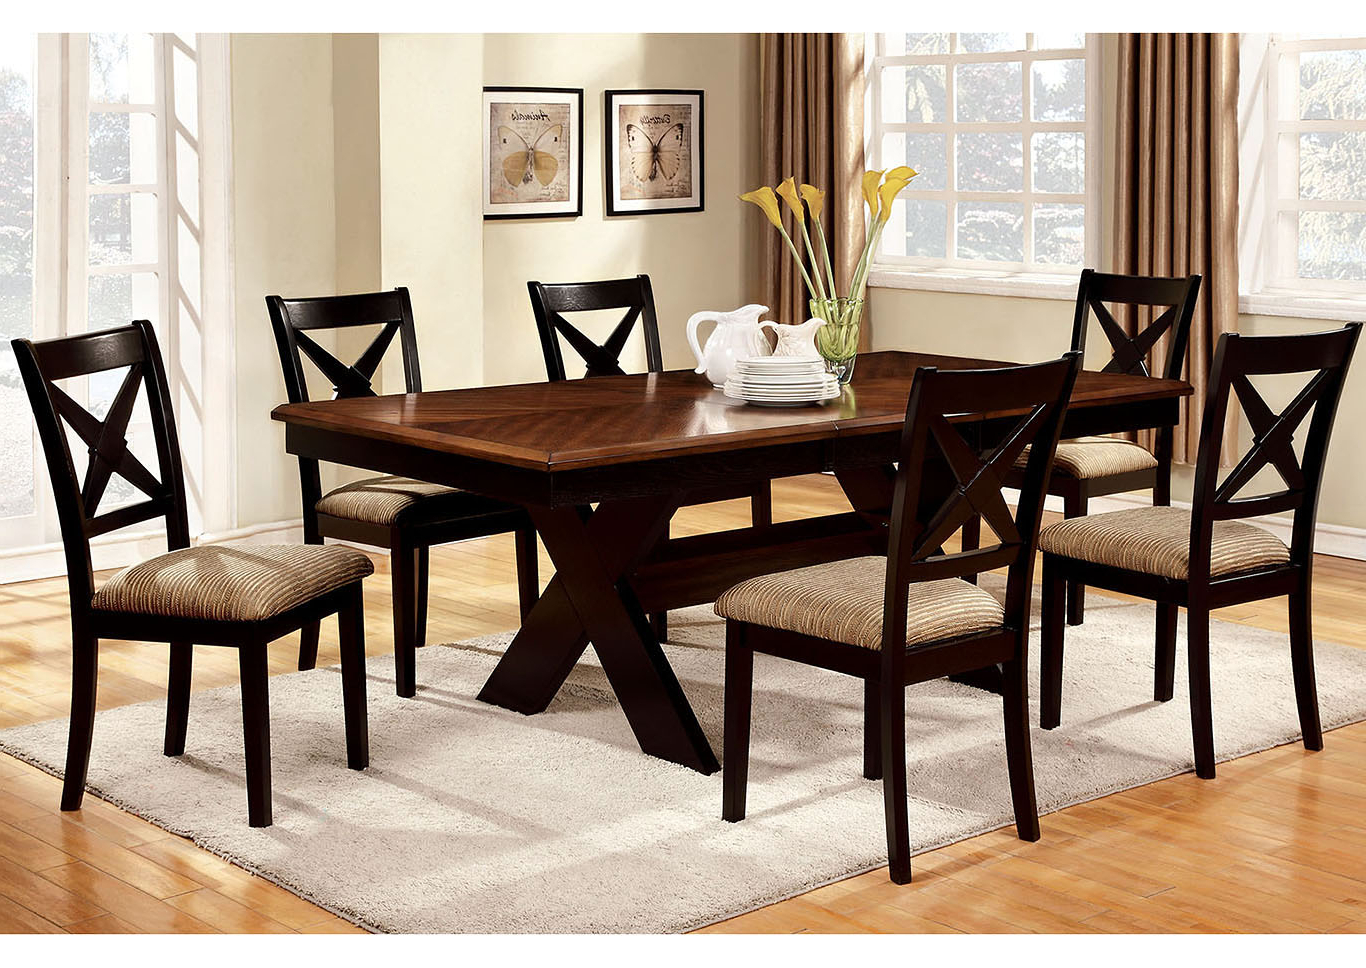 Most Up To Date Transitional 6 Seating Casual Dining Tables Intended For Foothills Family Furniture Liberta Extension Leaf Dining (View 18 of 25)